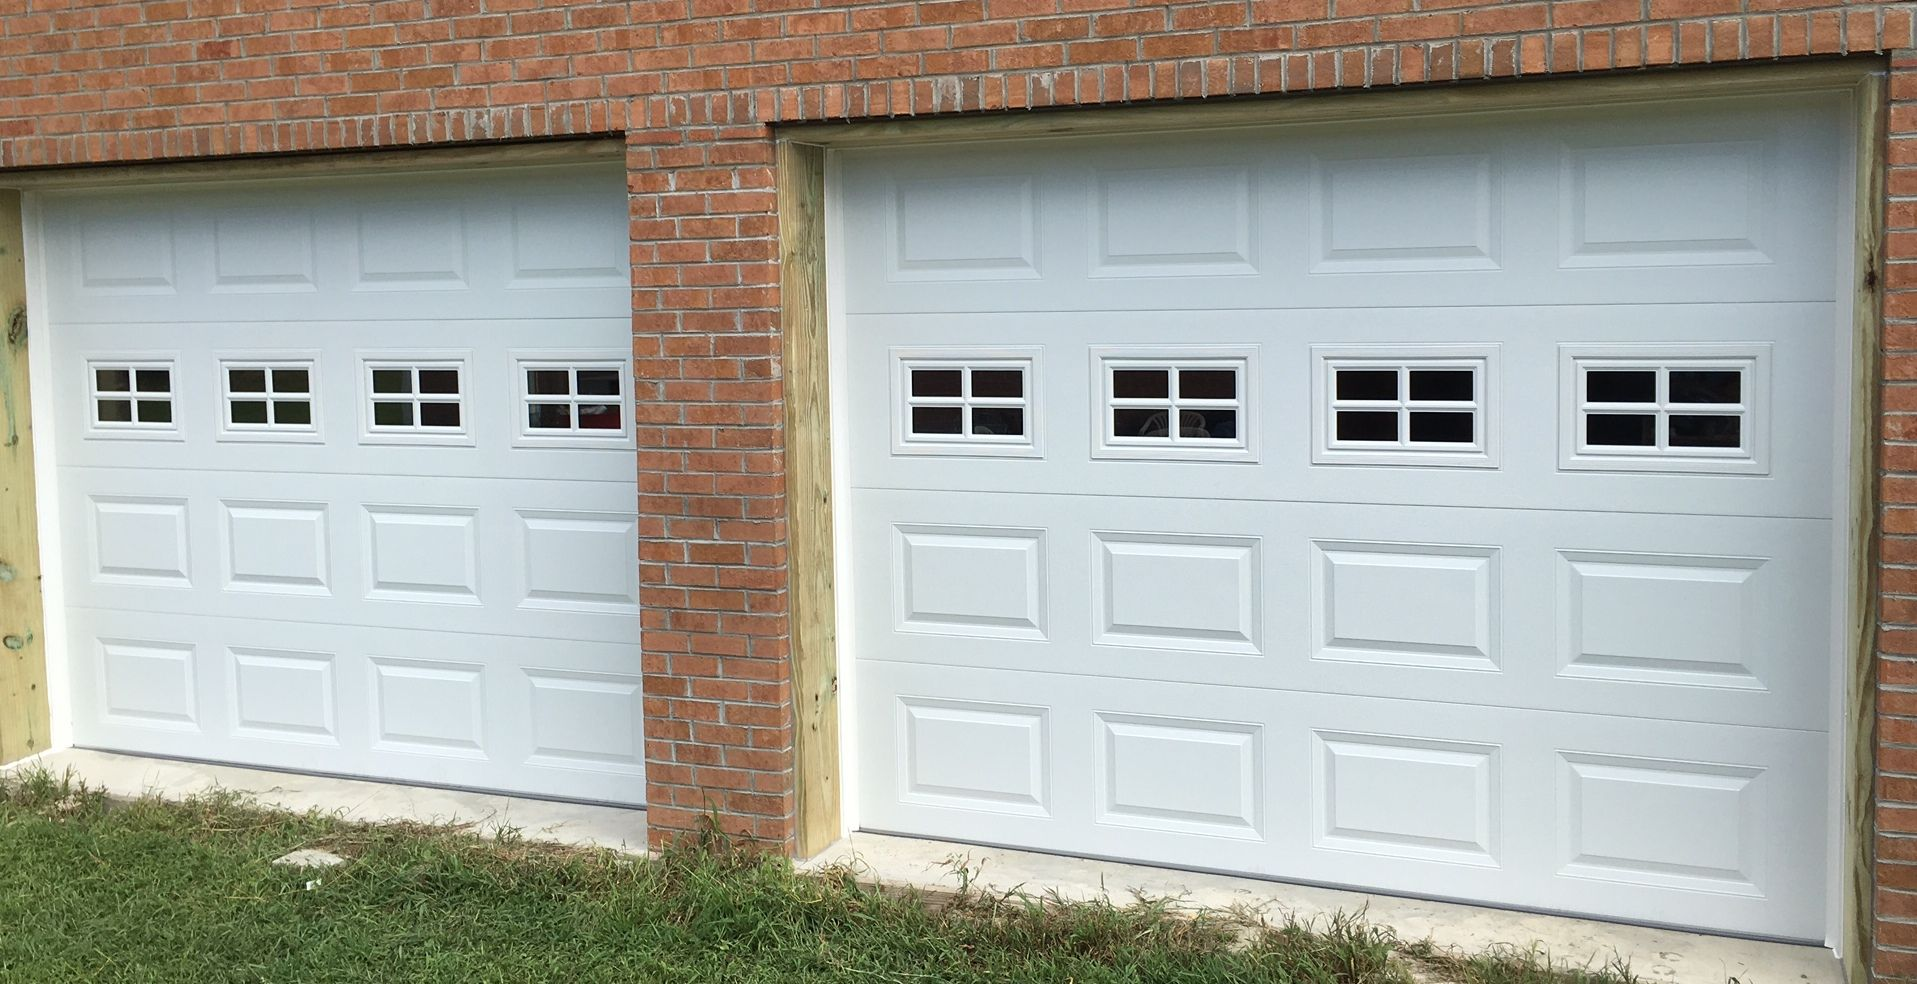 Two 9x7 Model 2216 Garage Doors With Stockton Glass Installed By The Richmond Store Teamappledoor Doors Garage Doors Outdoor Decor